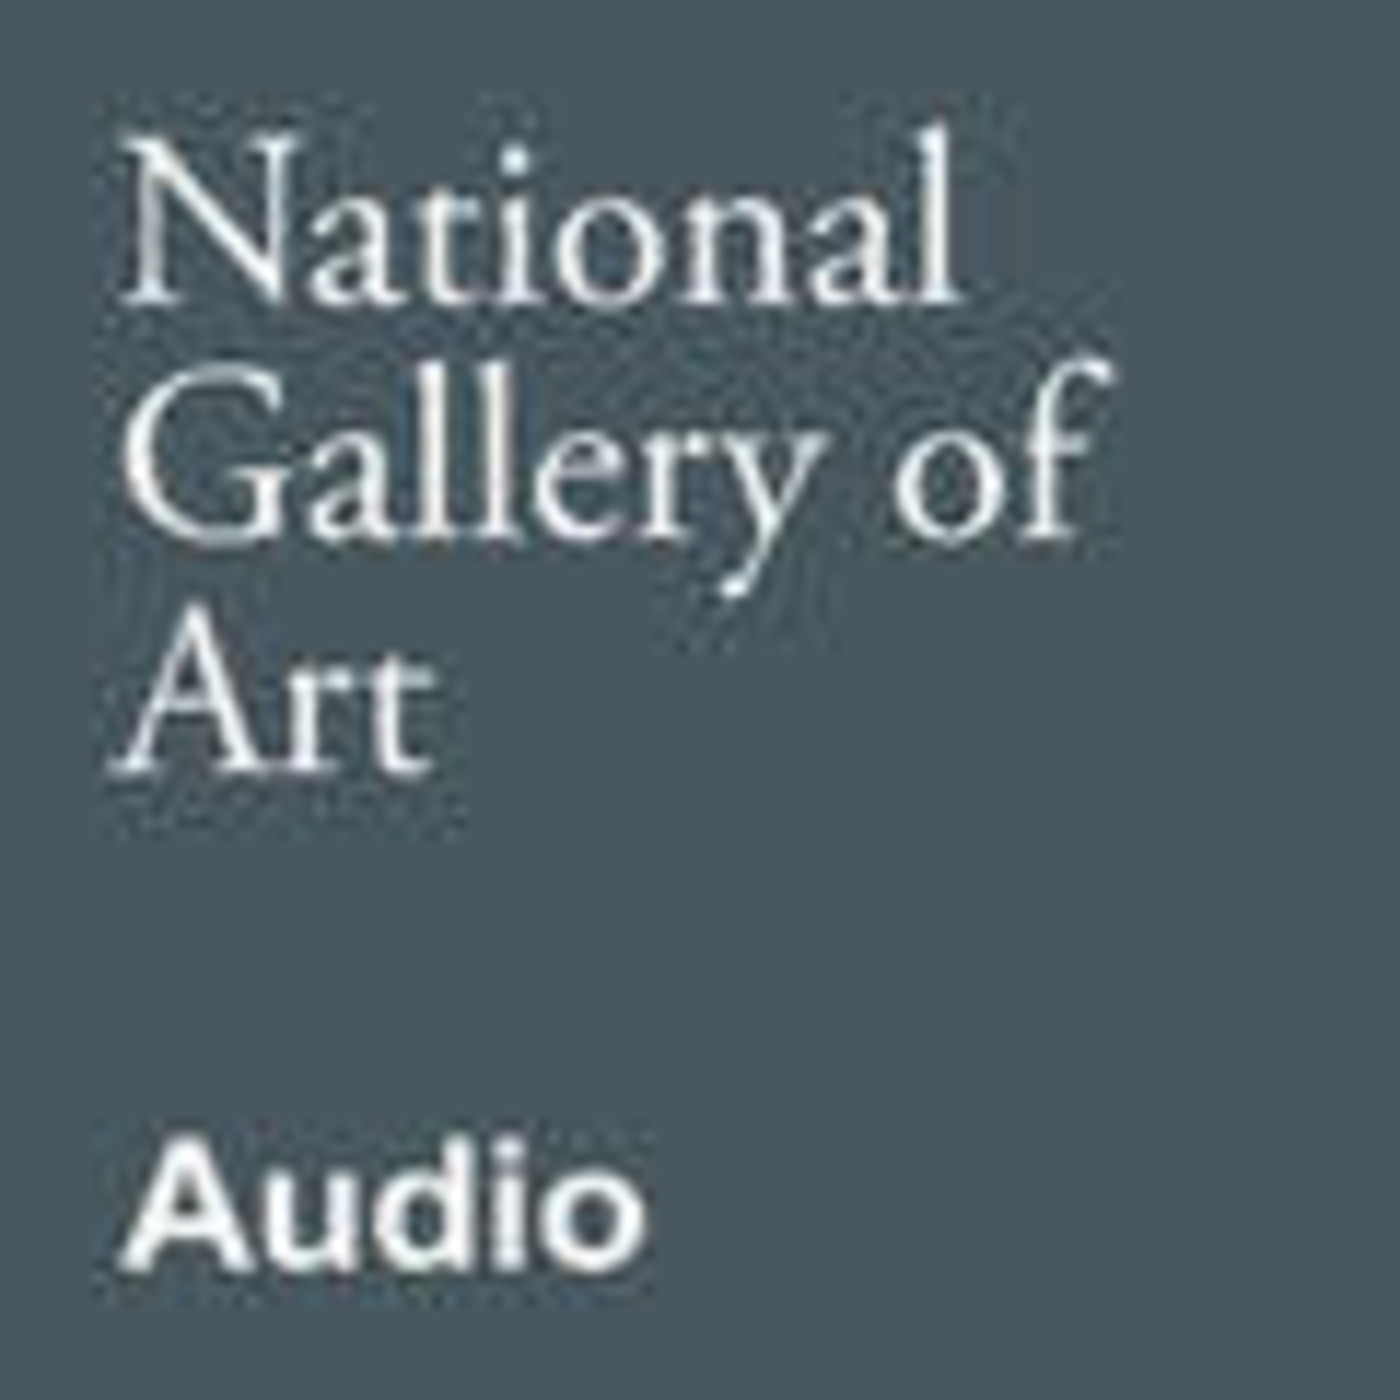 National Gallery of Art, Washi